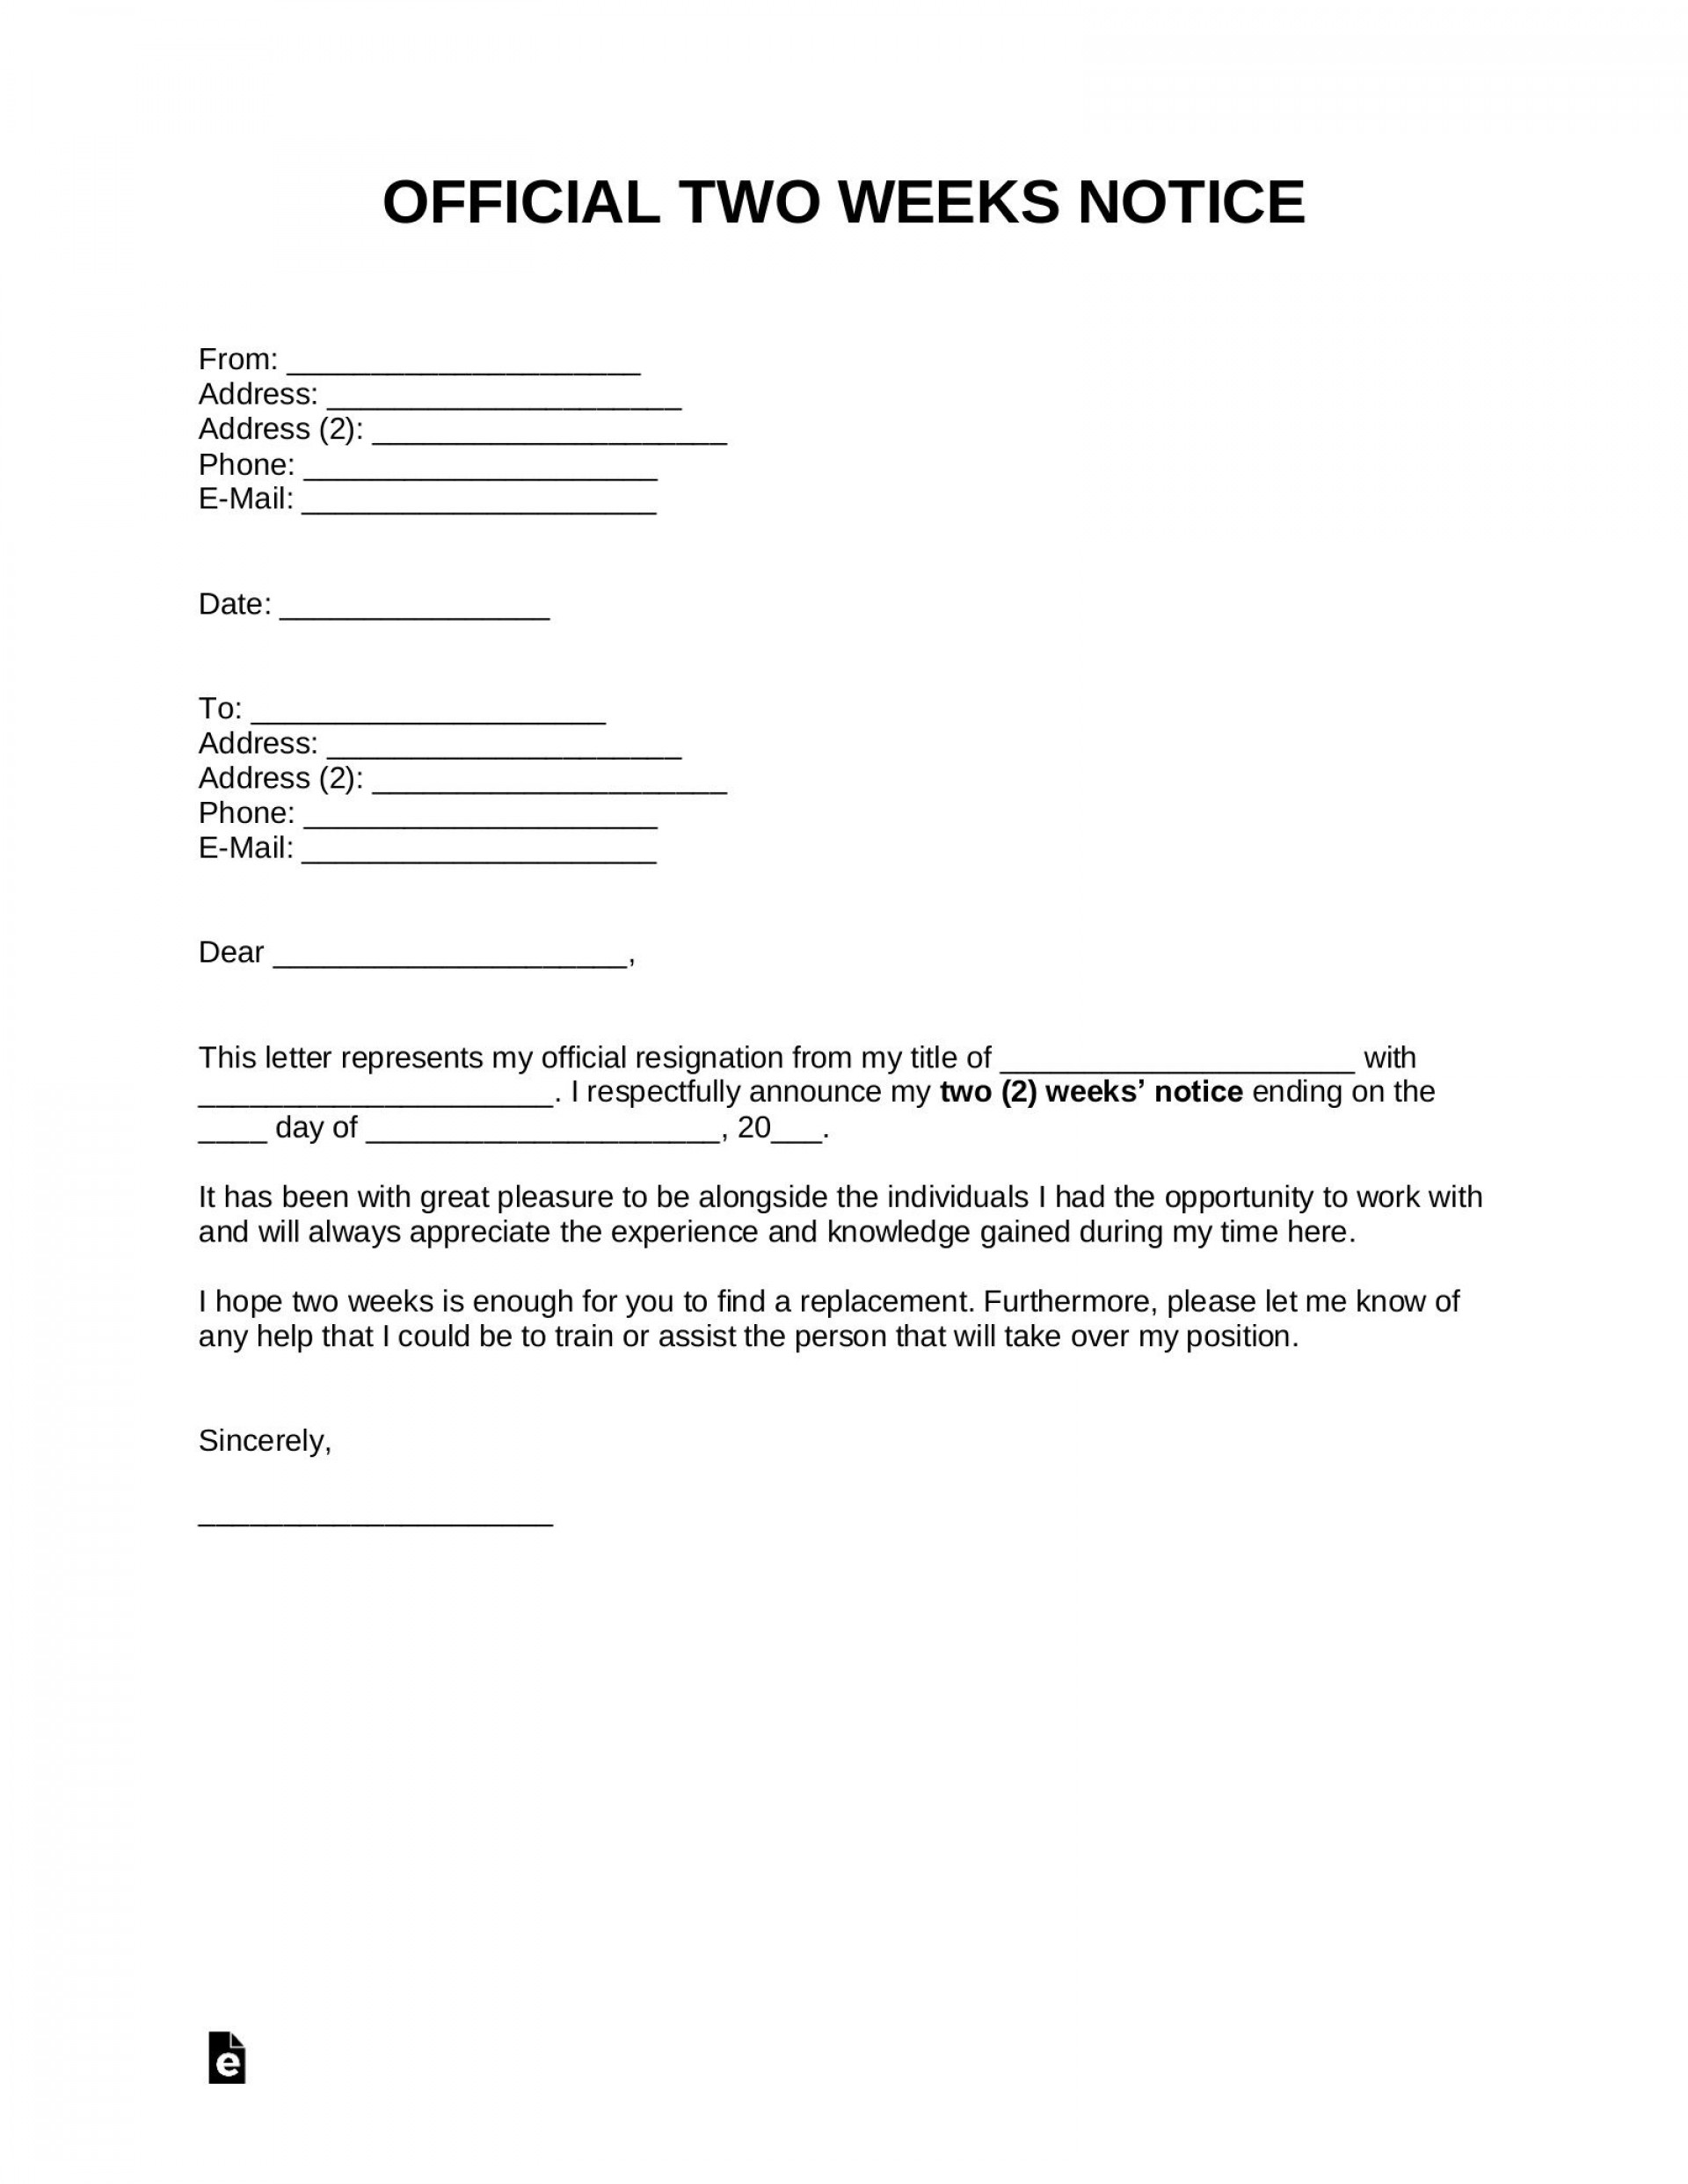 008 Excellent Two Week Notice Letter Template Image  Free Professional 21920